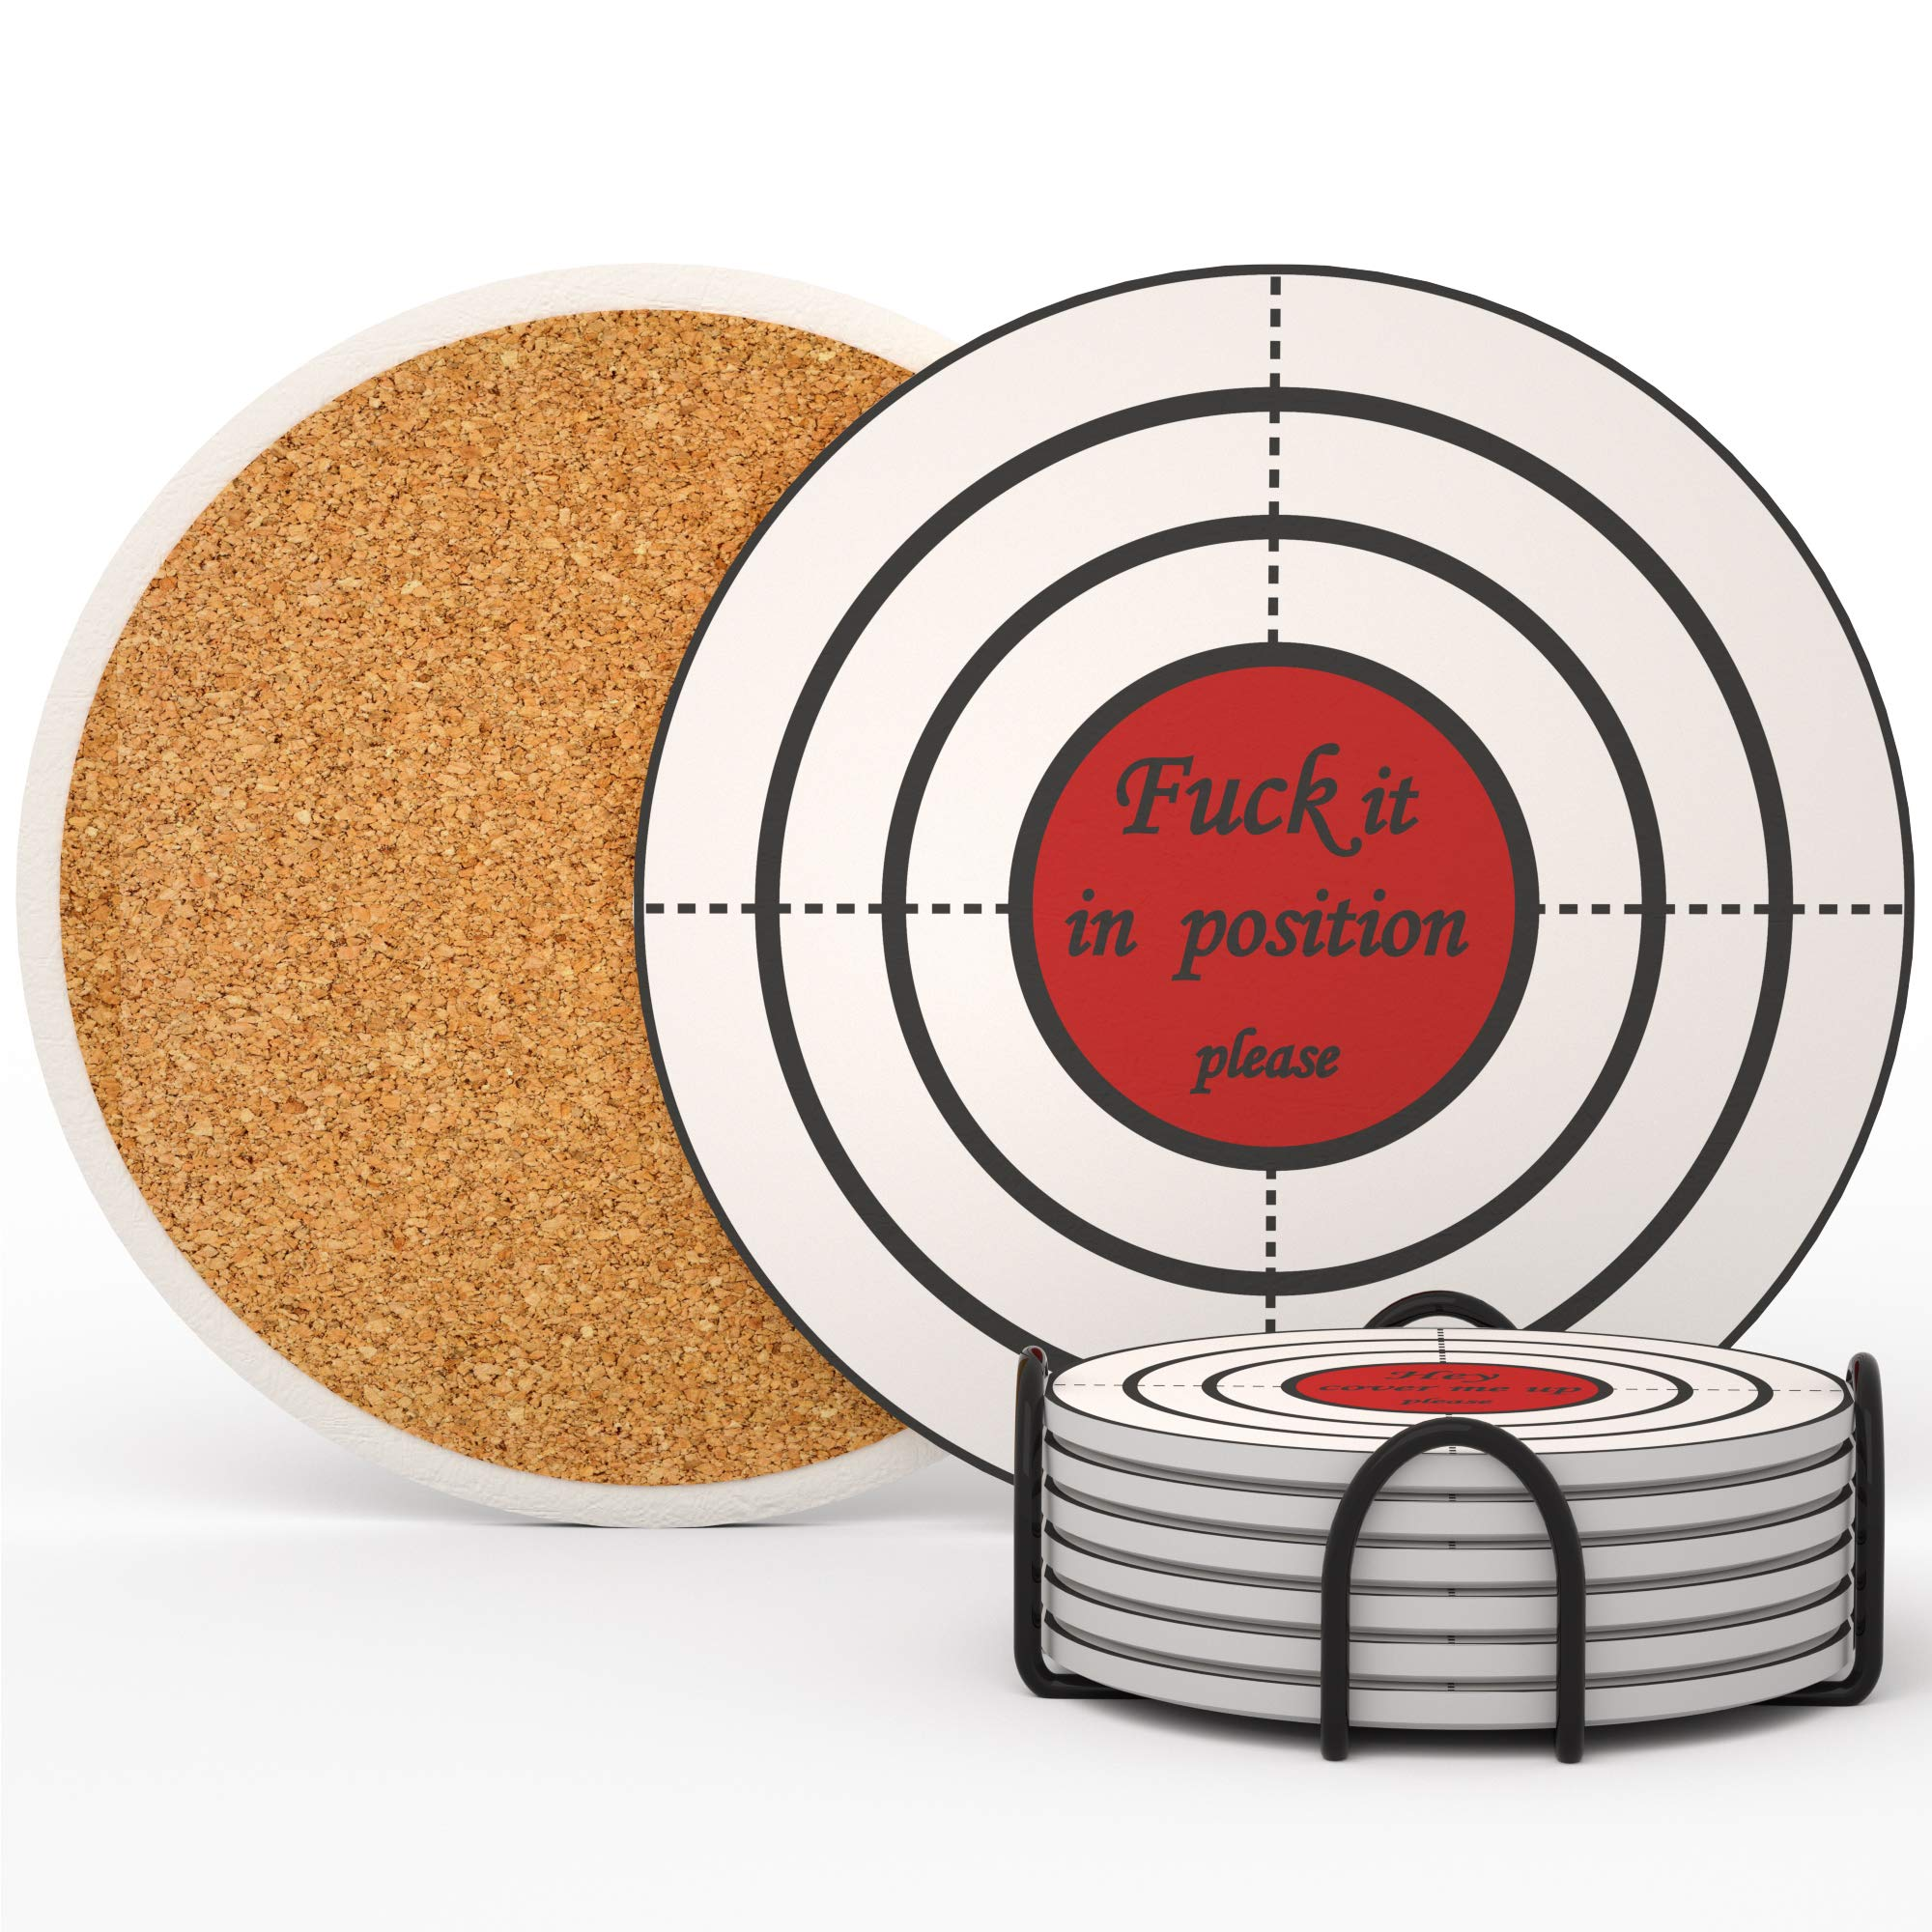 Fun Coasters That Serve A Purpose!